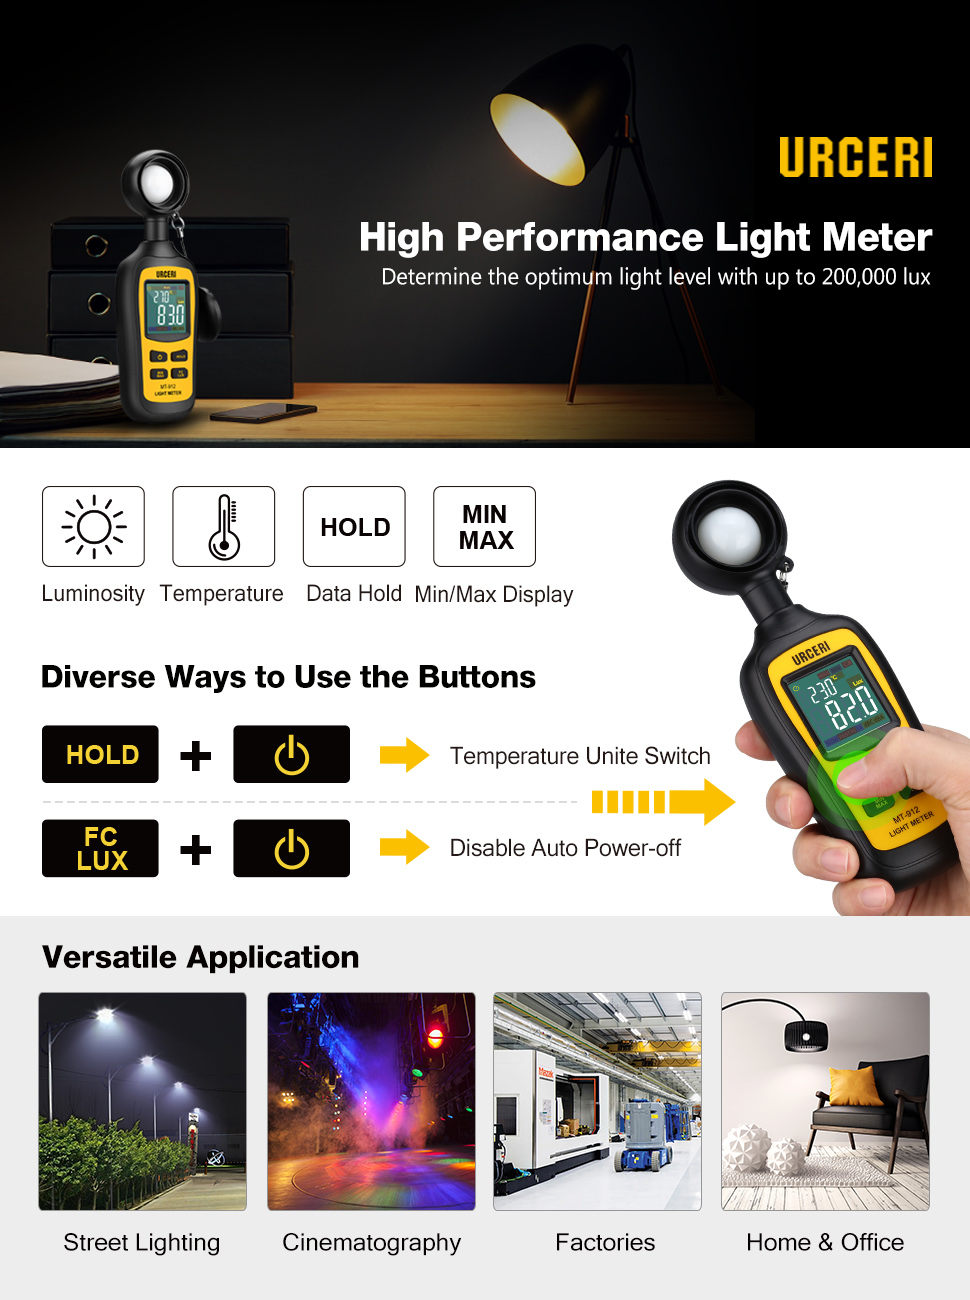 URCERI Handheld Digital Light Meter Ambient Temperature Measurer with Range  up to 200,000 Lux with 4 Digit Color LCD Screen